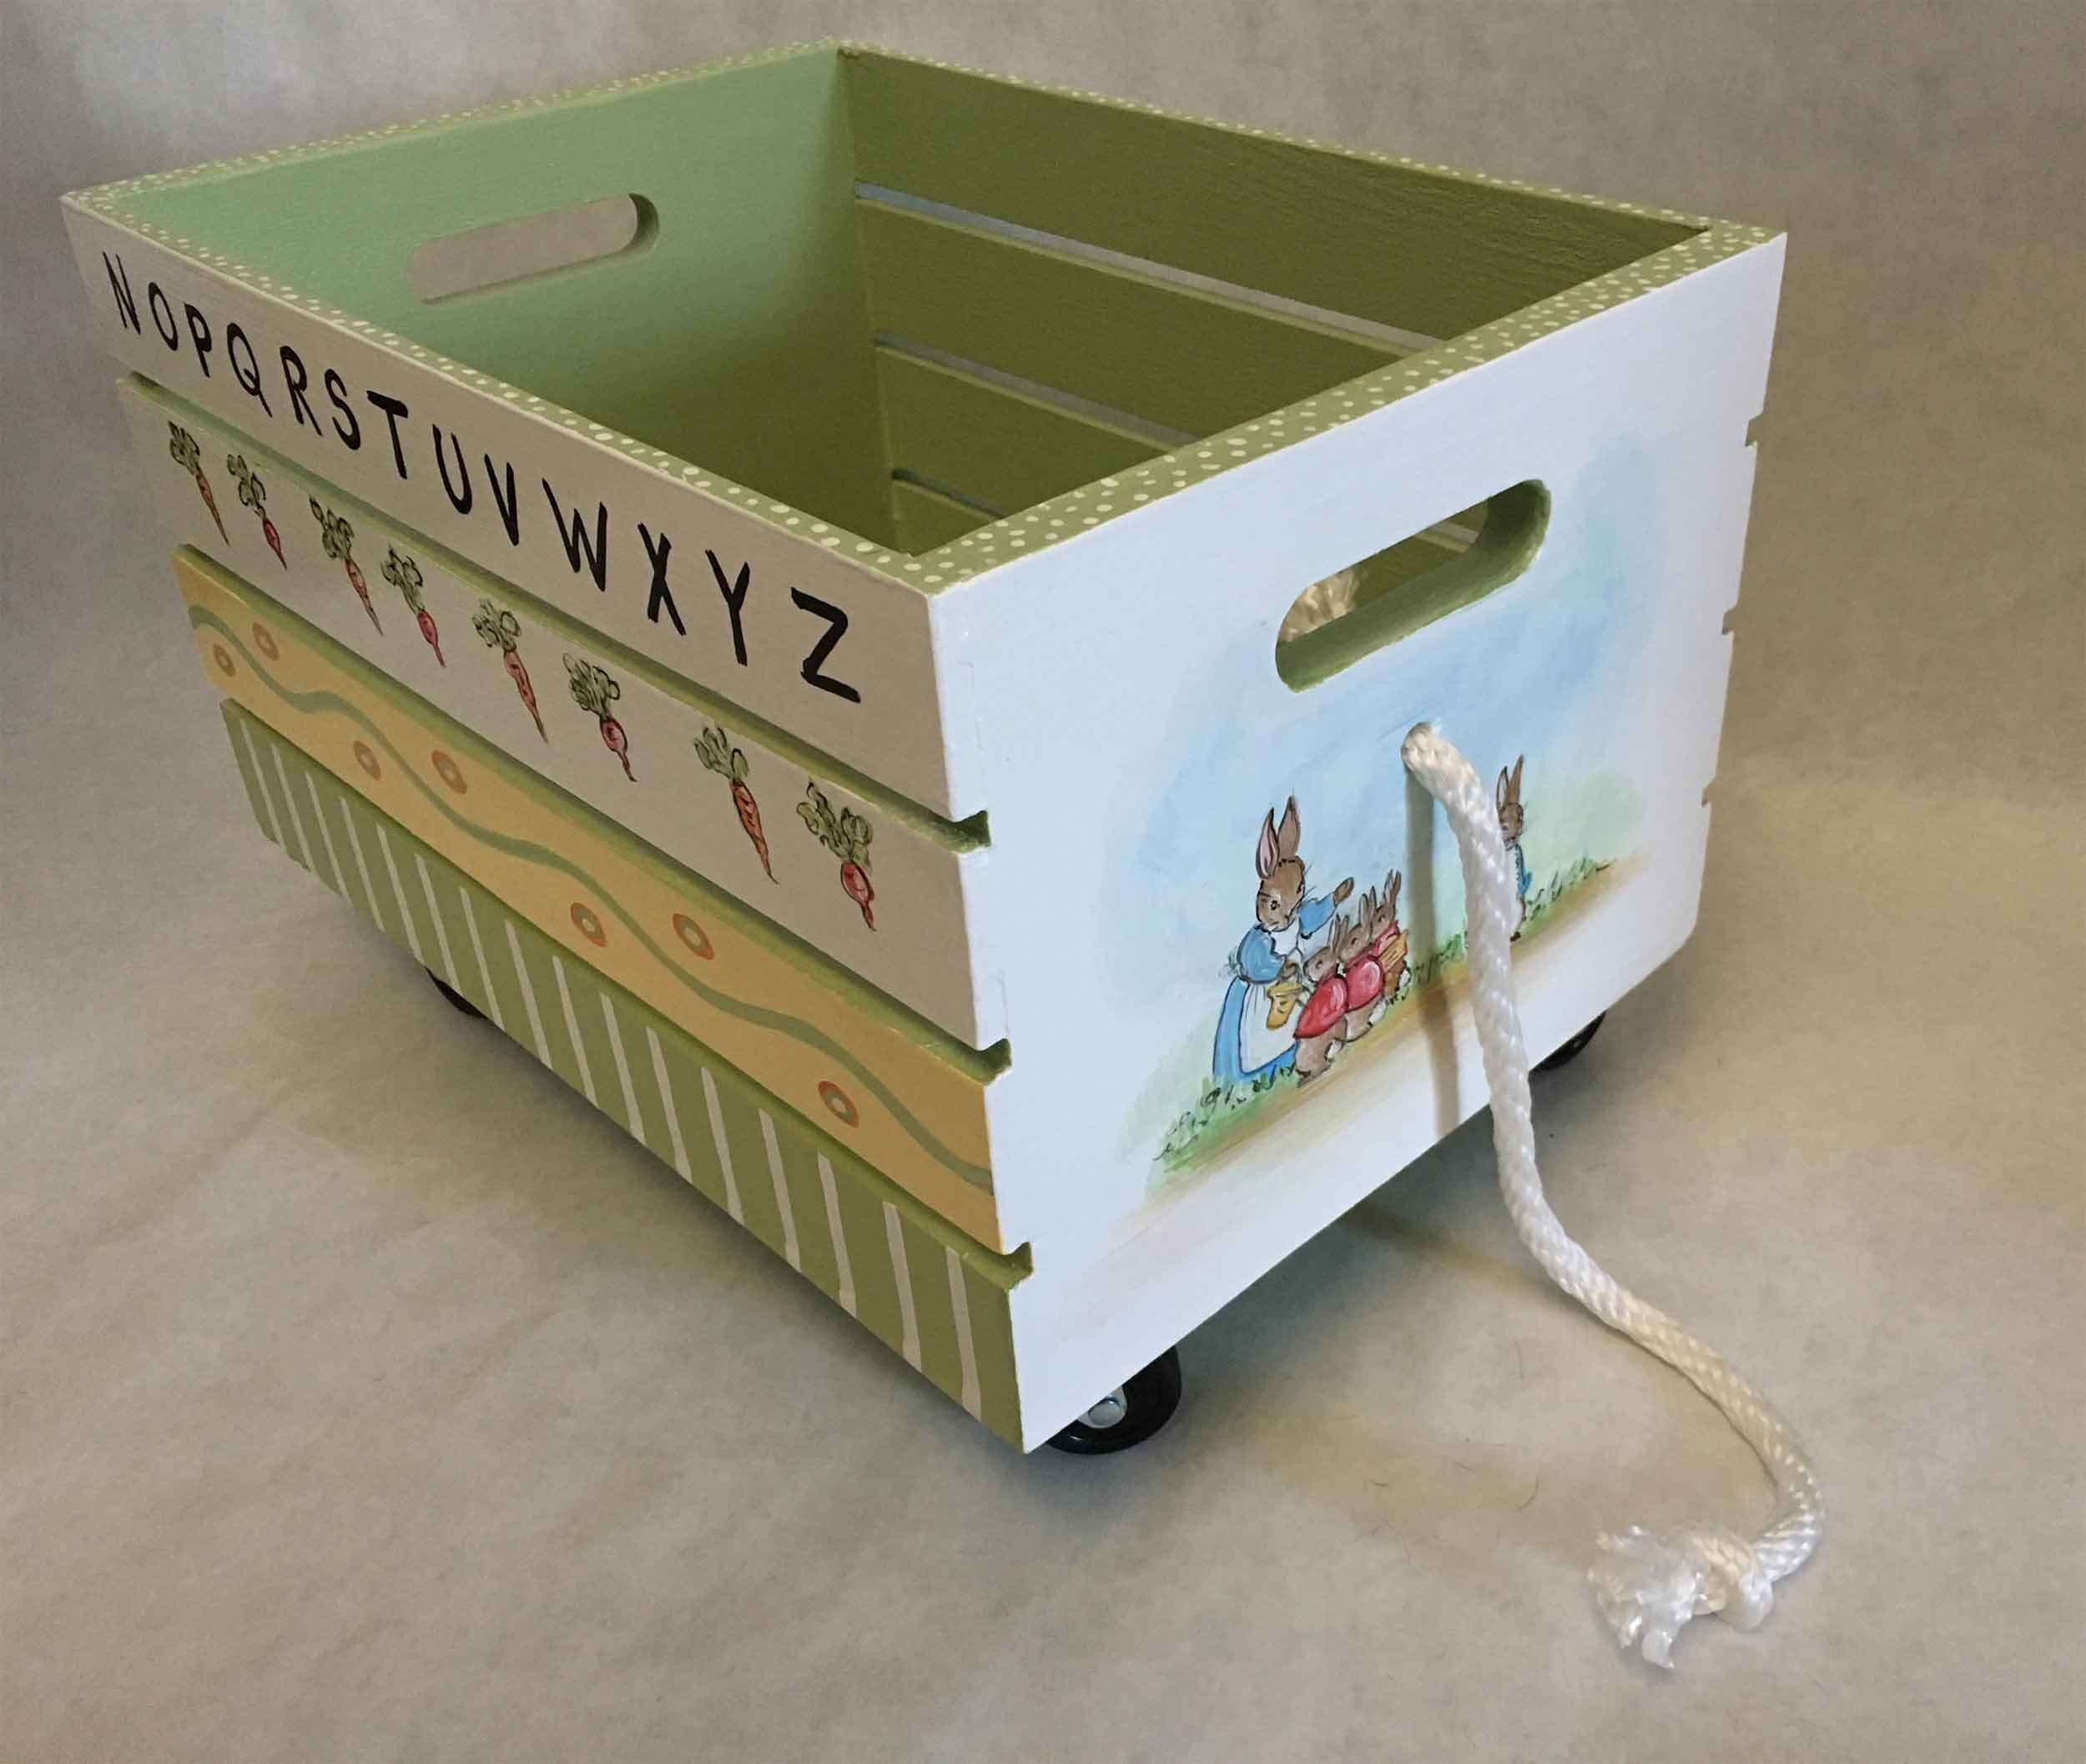 Peter Rabbit Toy Box Crate Book Box Crate Book Storage Kids Book Box Kids Toy Storage Hand Painted Toy Box Crate Kid Toy Storage Painted Toy Boxes Painting Kids Furniture